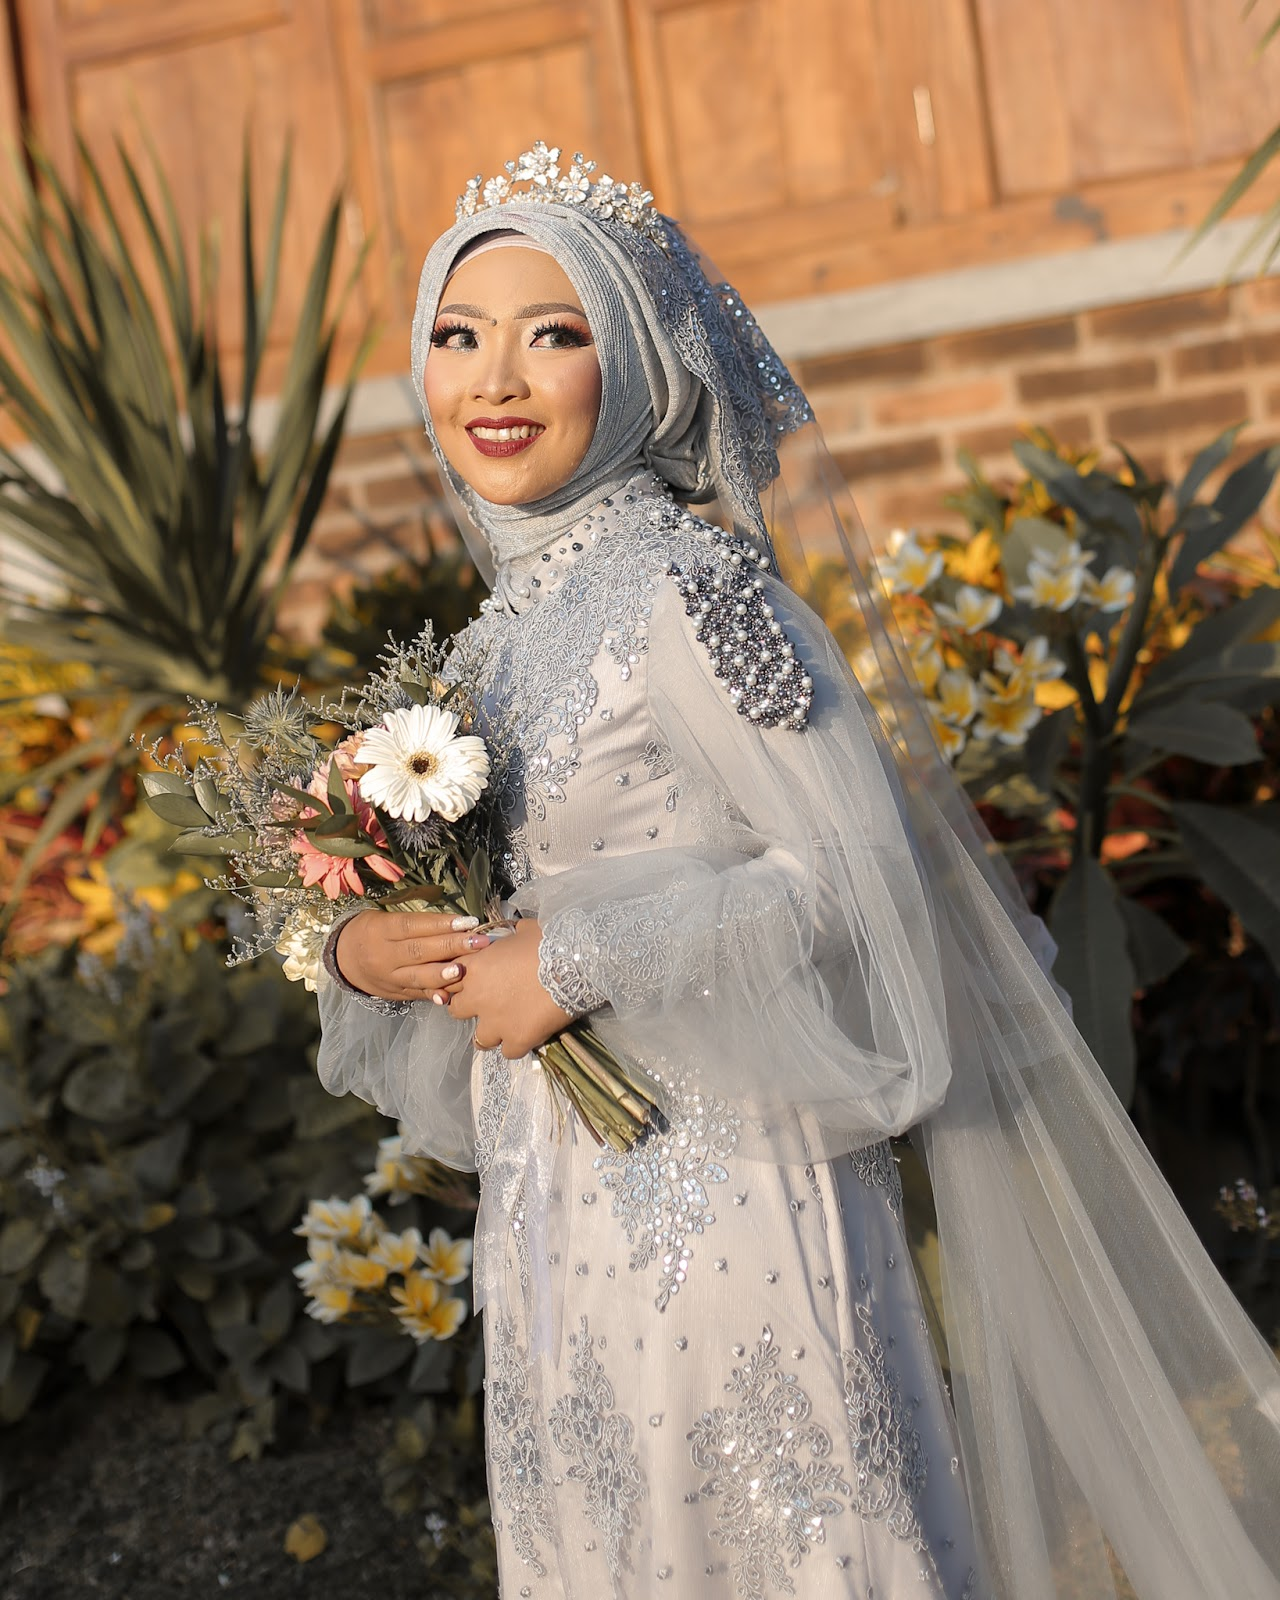 hijab wedding, wedding dress hijab, wedding dress inspiration